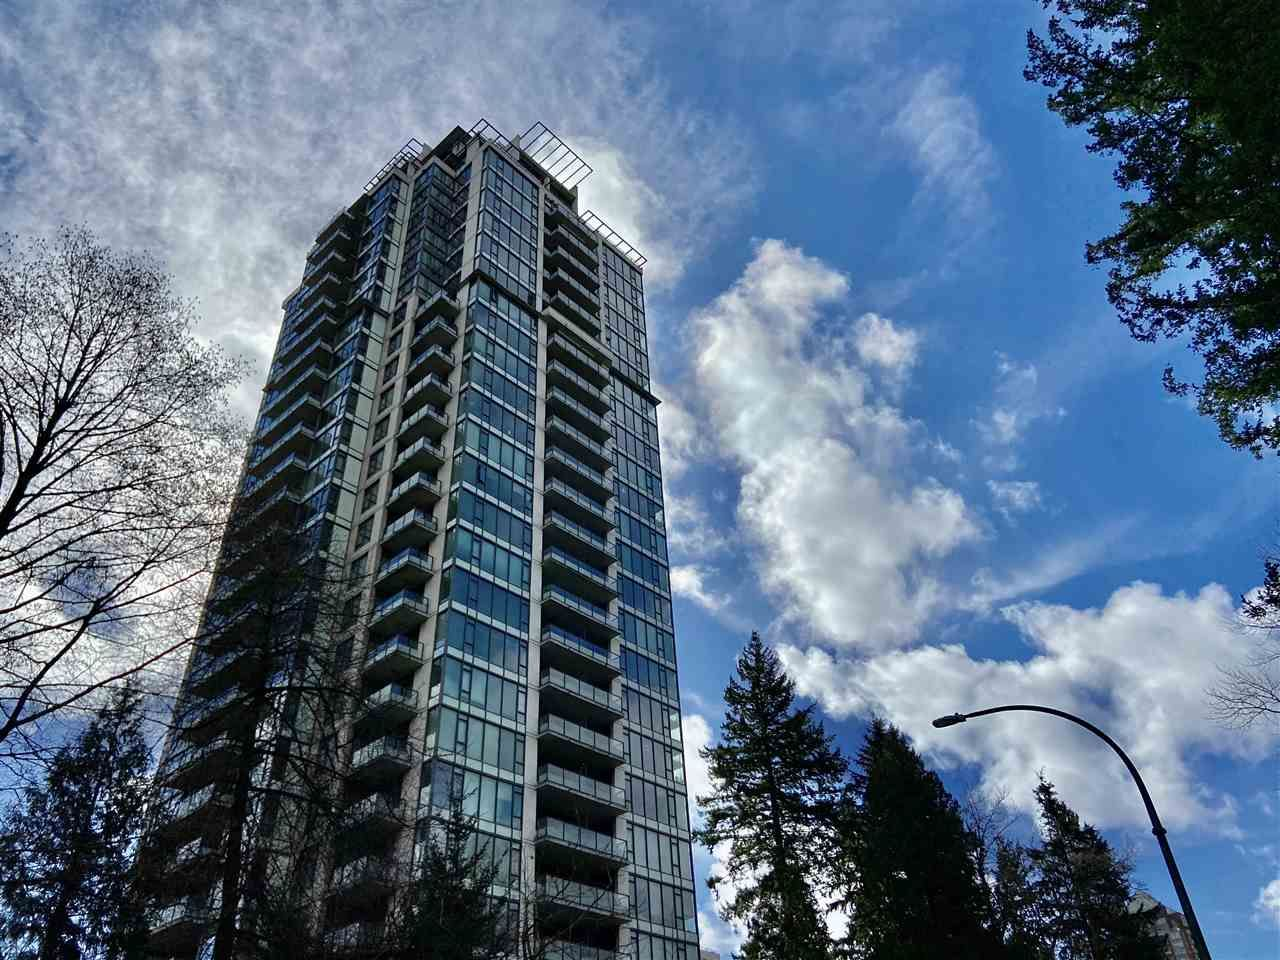 Main Photo: 1103 7088 18TH Avenue in Burnaby: Edmonds BE Condo for sale (Burnaby East)  : MLS®# R2548181